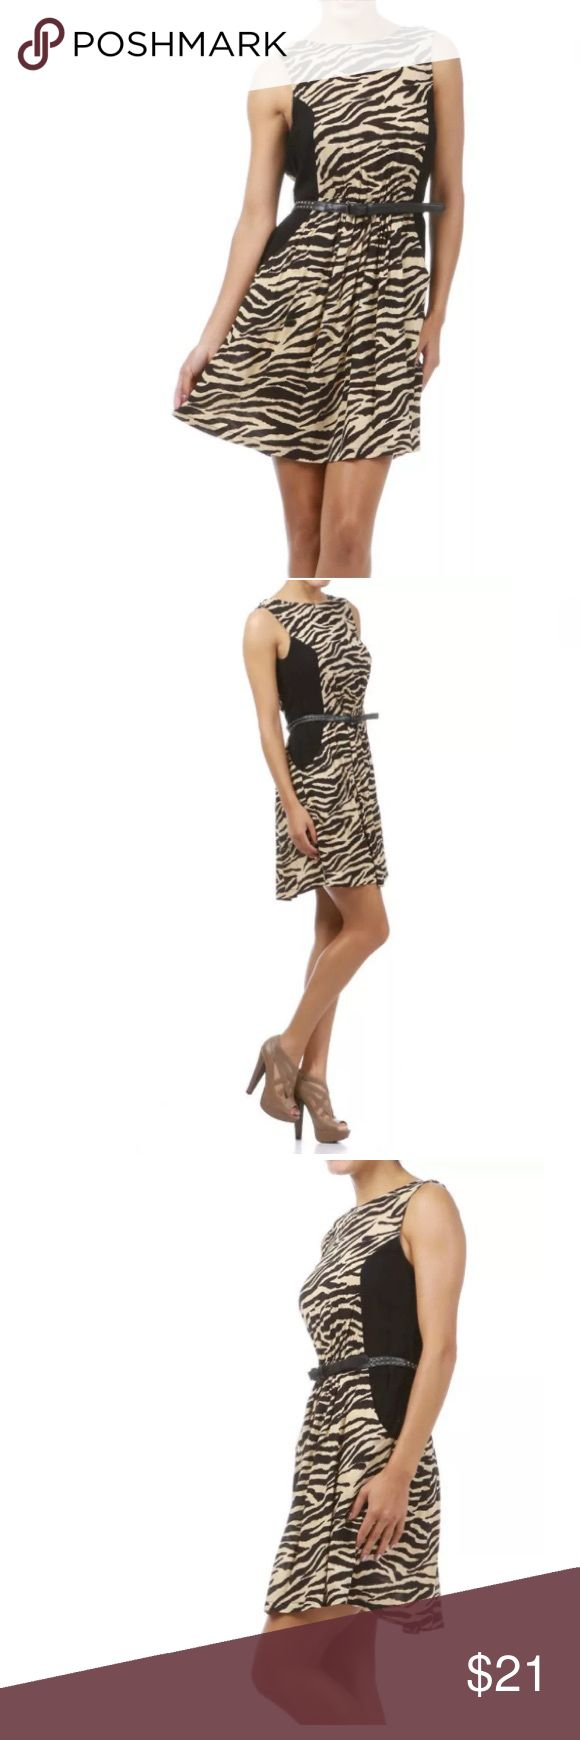 Animal Print Beige Studded Belt Dress NEW Featuring a black and beige animal printed dress. High neckline. Black side panels. Waist is slightly cinched with an elastic hem and decorated with a skinny black belt with rocket studs. Low v shaped backside. See the listing pictures for more detail. Short mini length.   Made of: 100% Rayon Dresses Mini